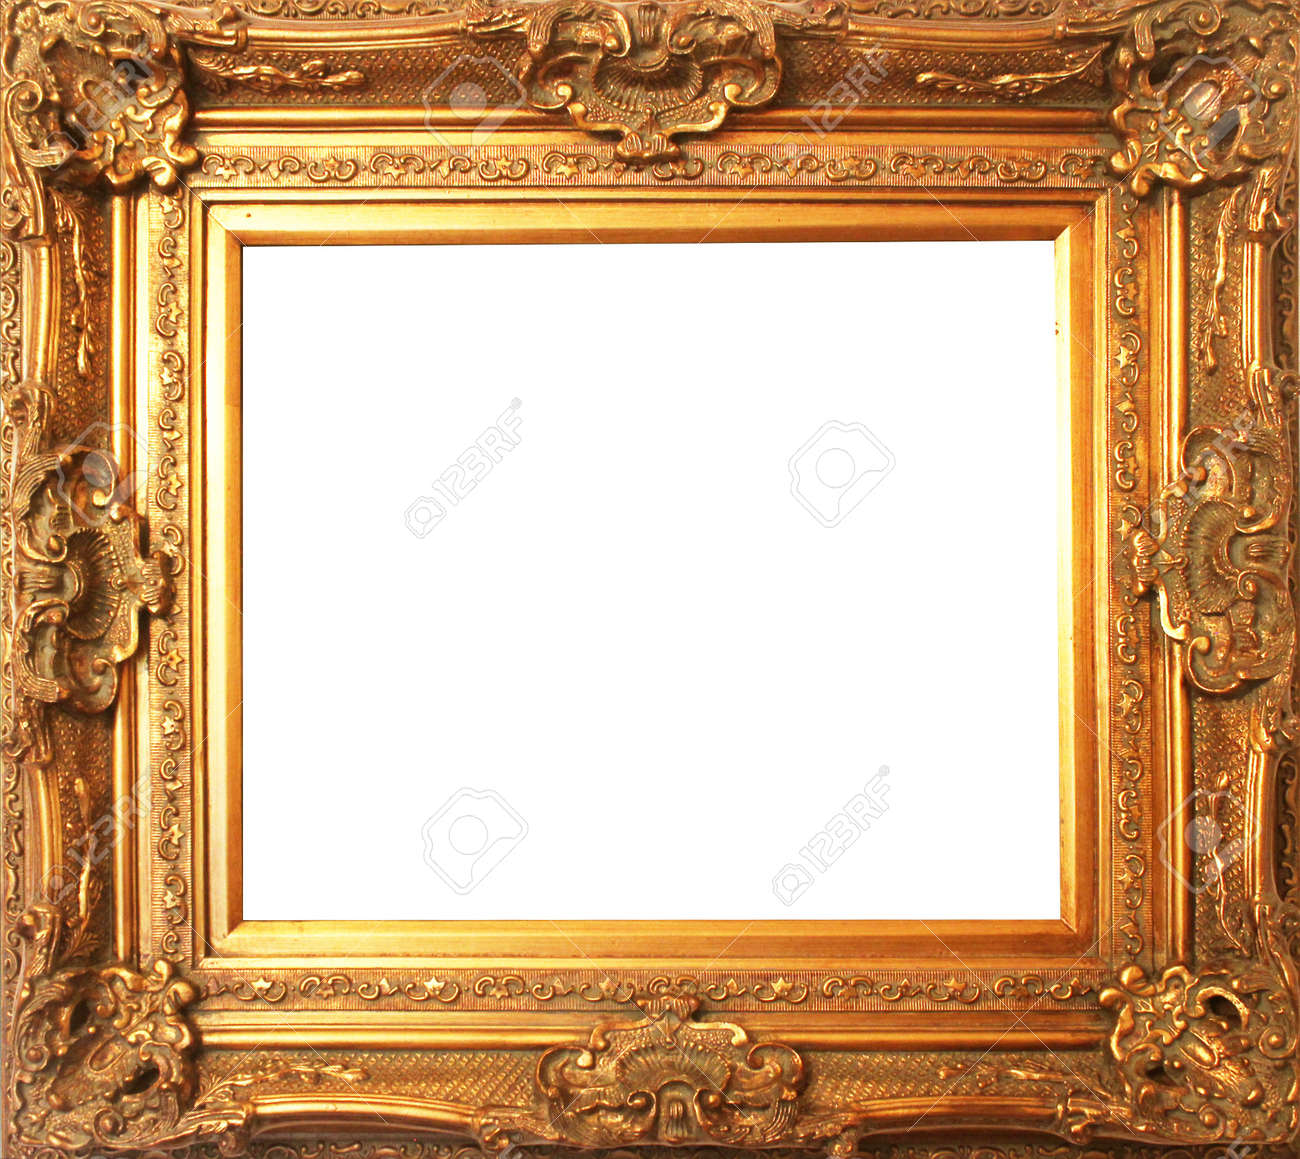 Old Antique Gold Frame Stock Photo Picture And Royalty Free Image